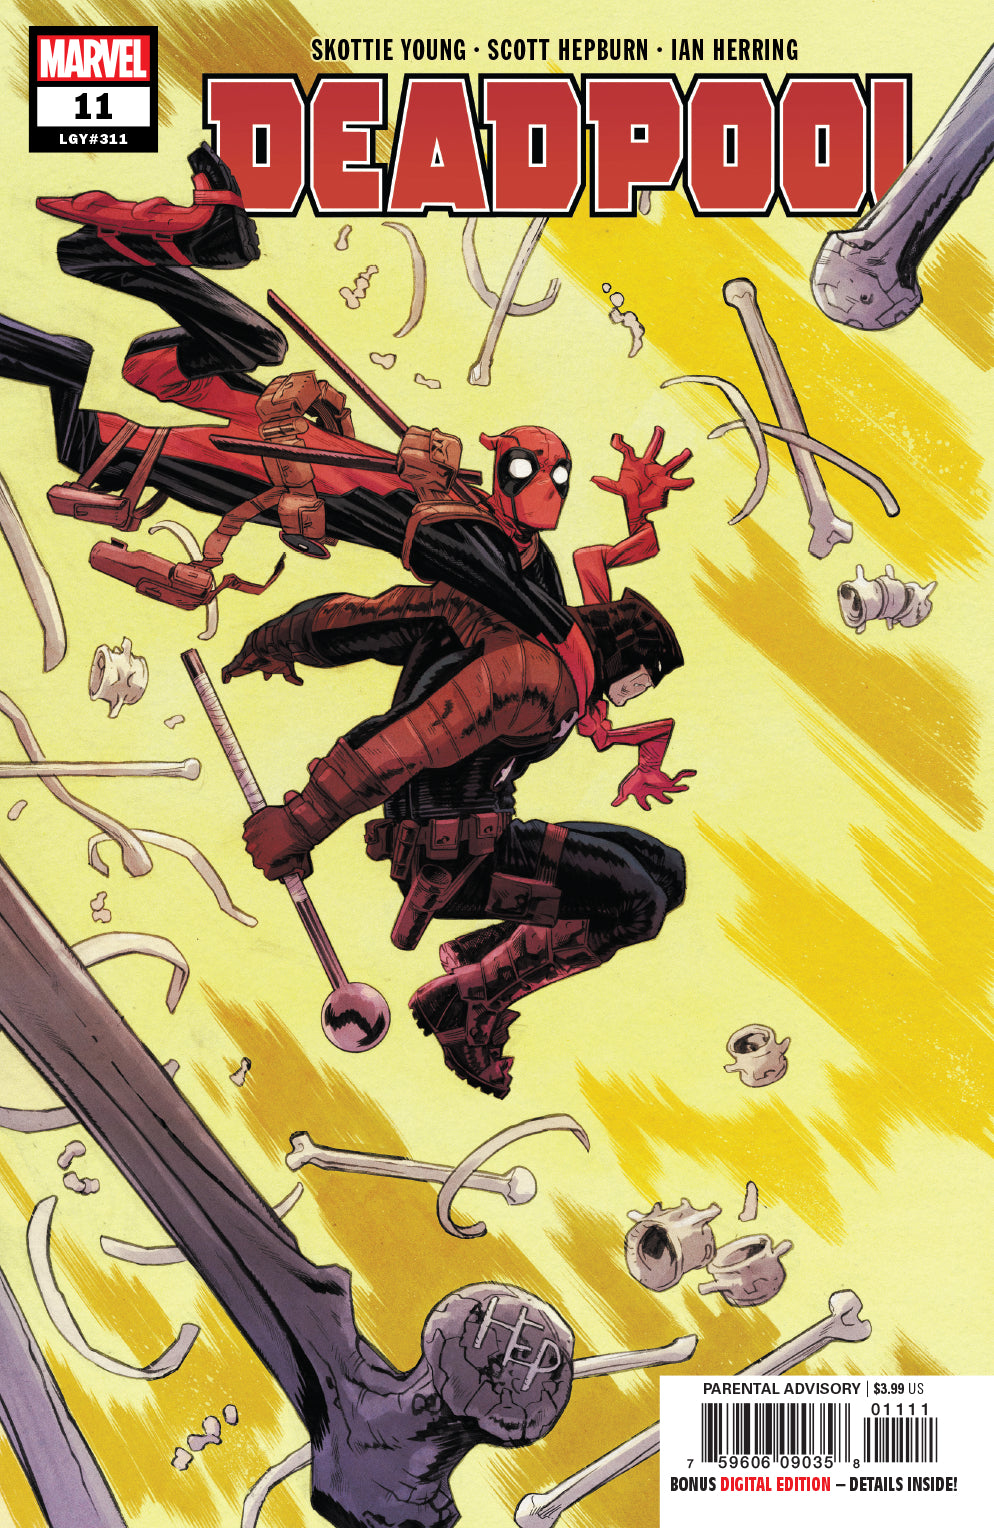 DEADPOOL #11 | Game Master's Emporium (The New GME)